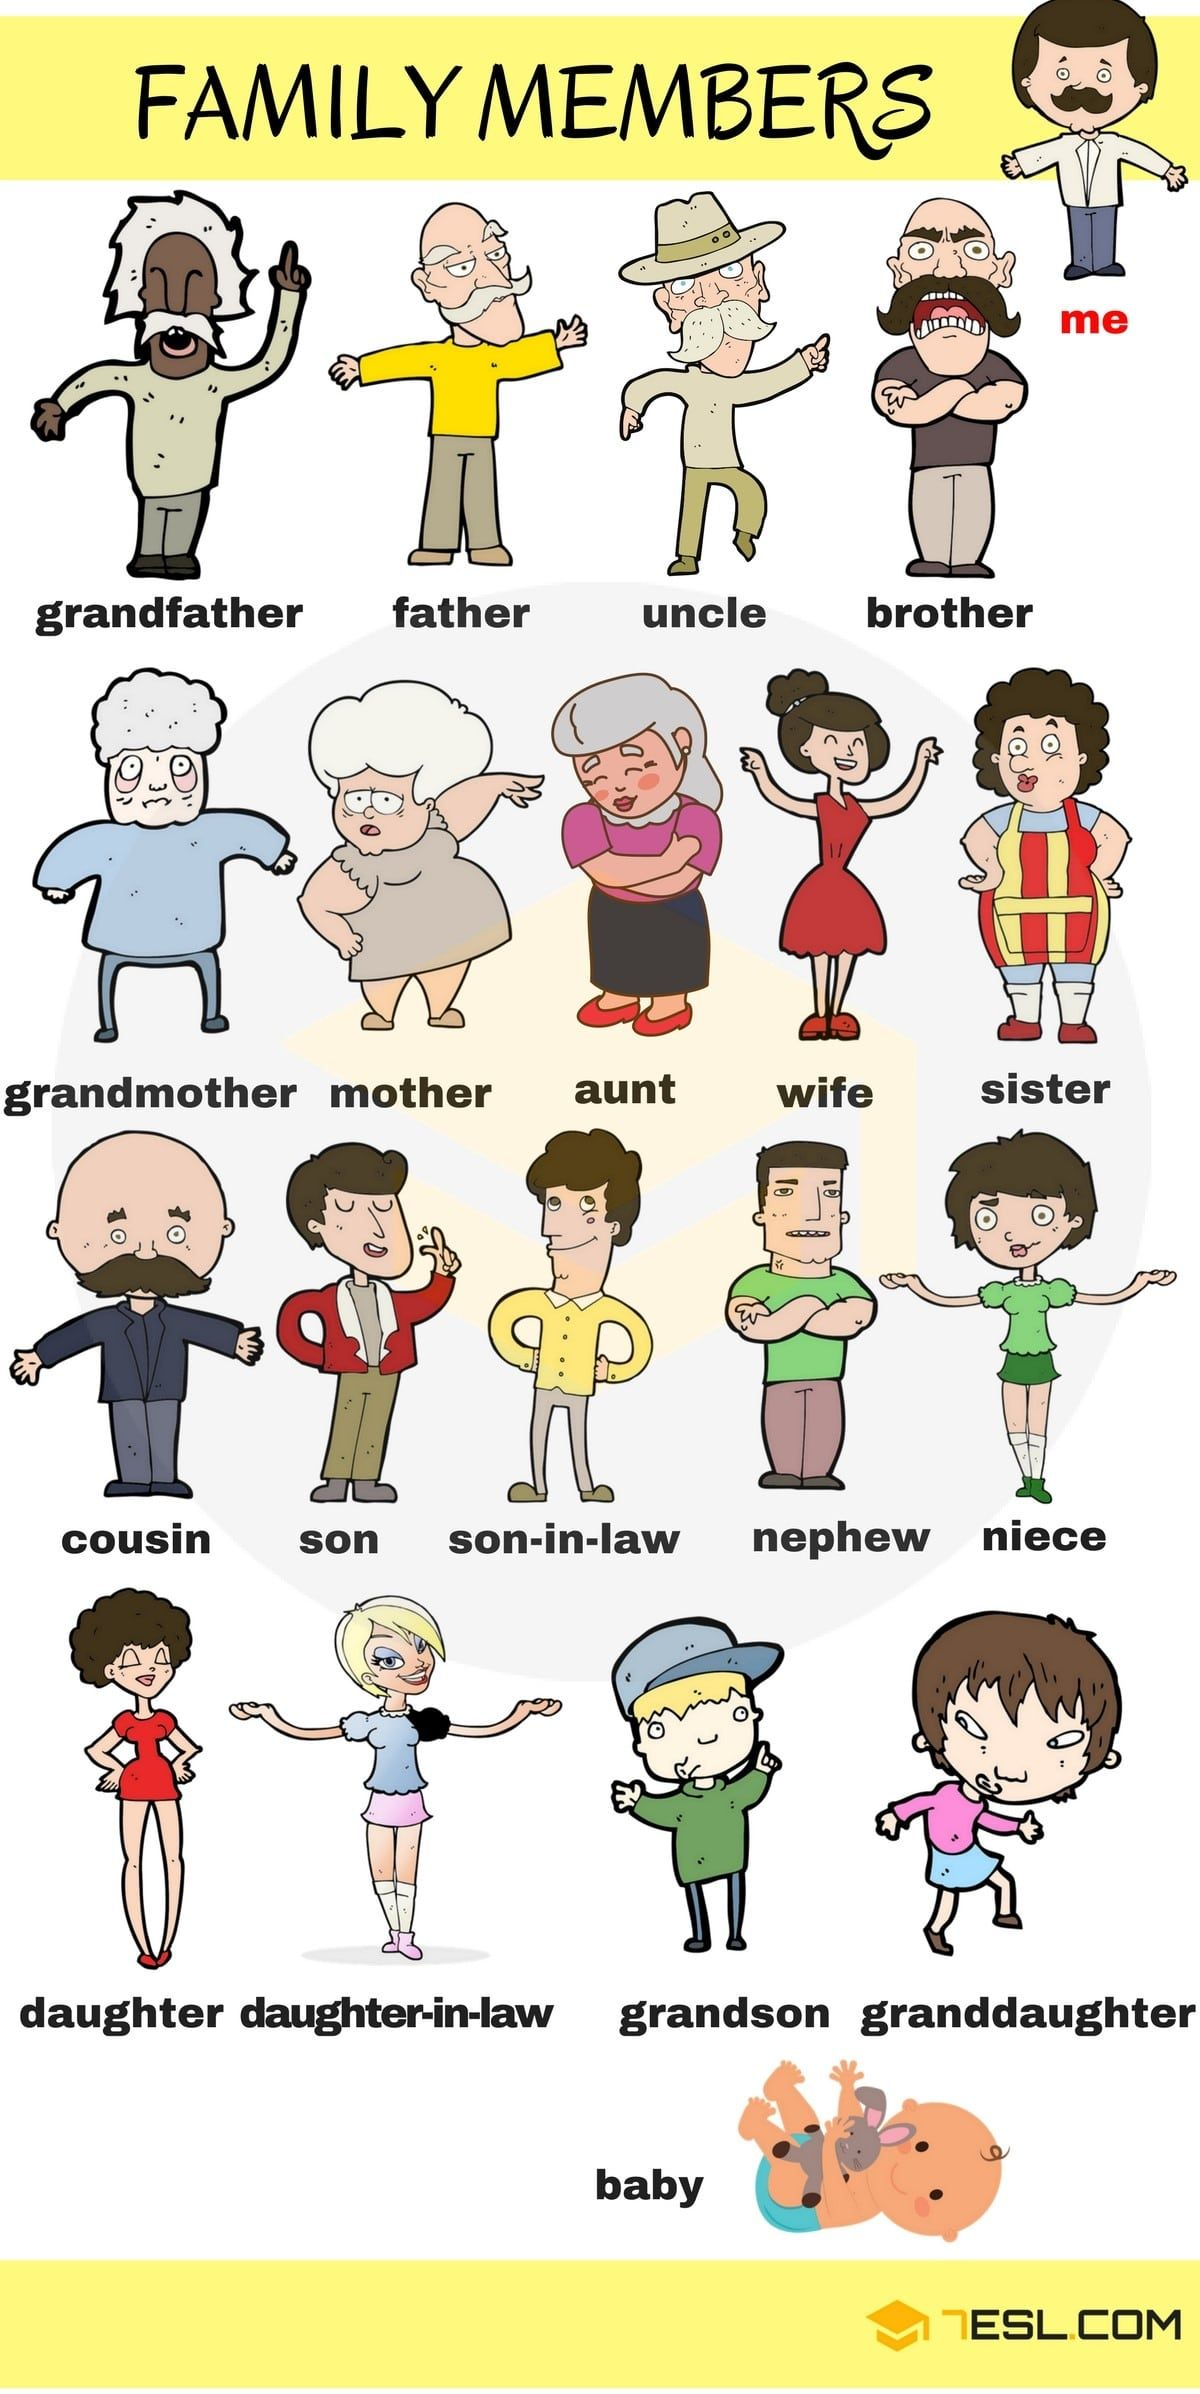 Libros Listening Ingles Family Members Vocabulary In English 7 InfografÍas